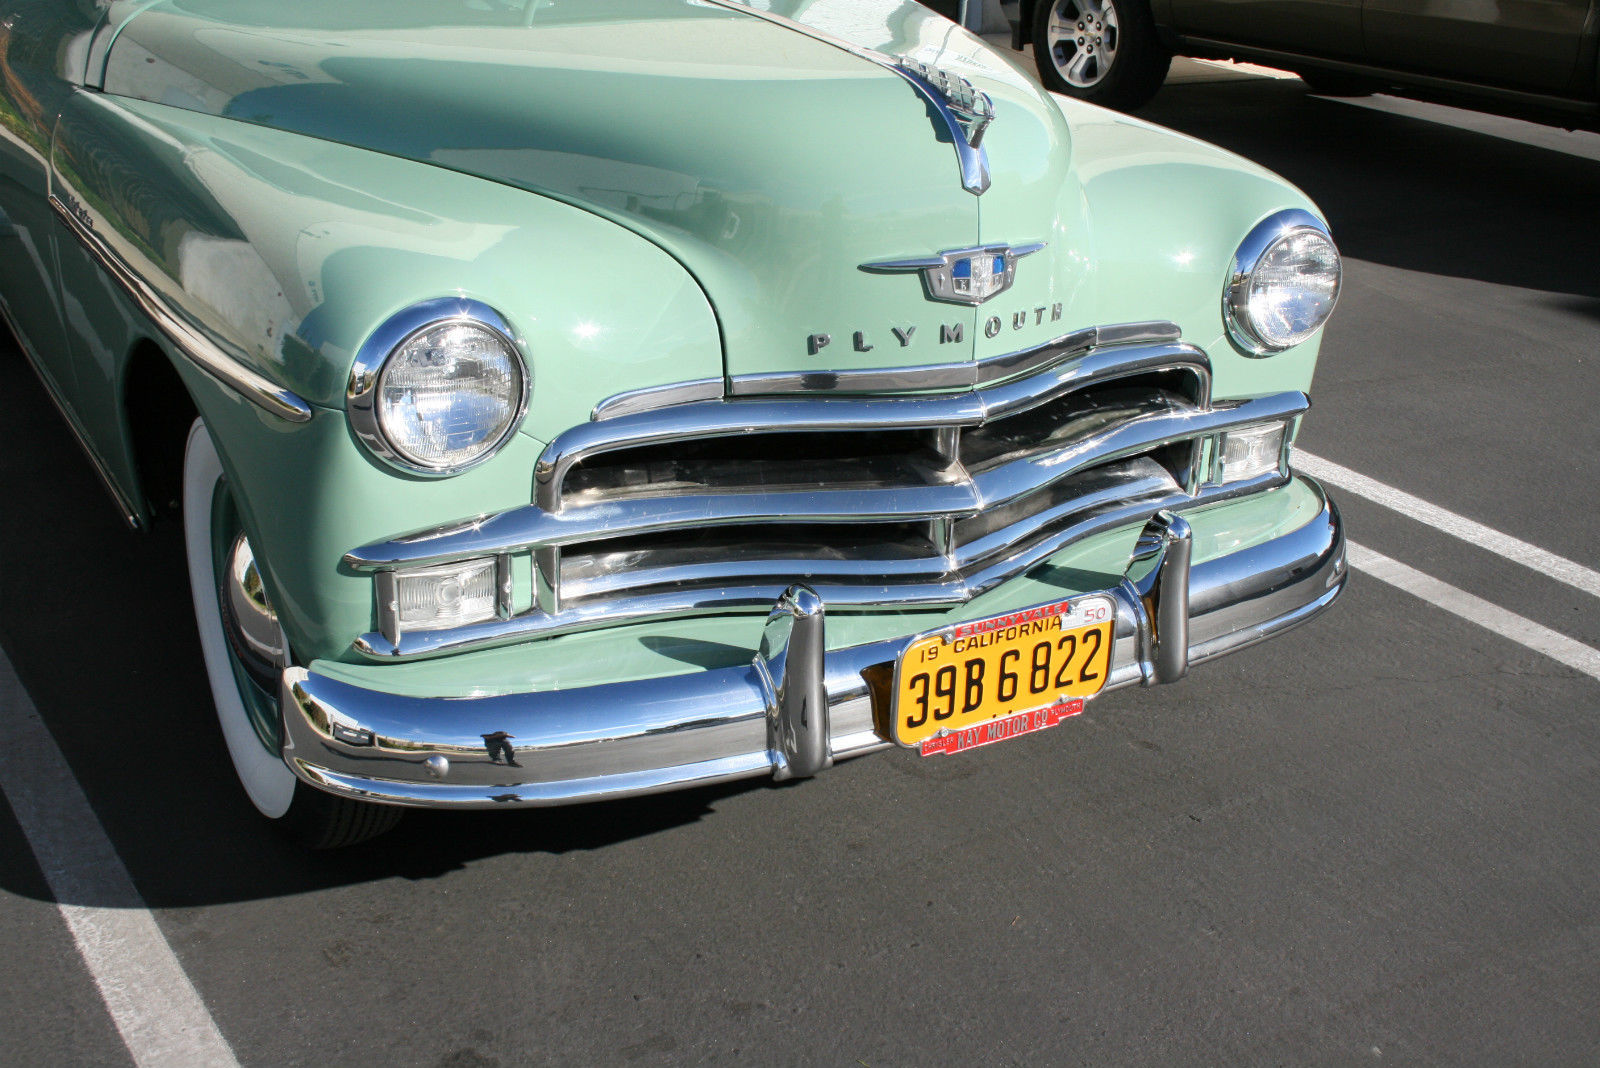 Rebuilt Cars For Sale >> 1950 Plymouth Suburban Station wagon Dodge 1949 1951 1956 1957 Chrysler Desoto for sale in ...